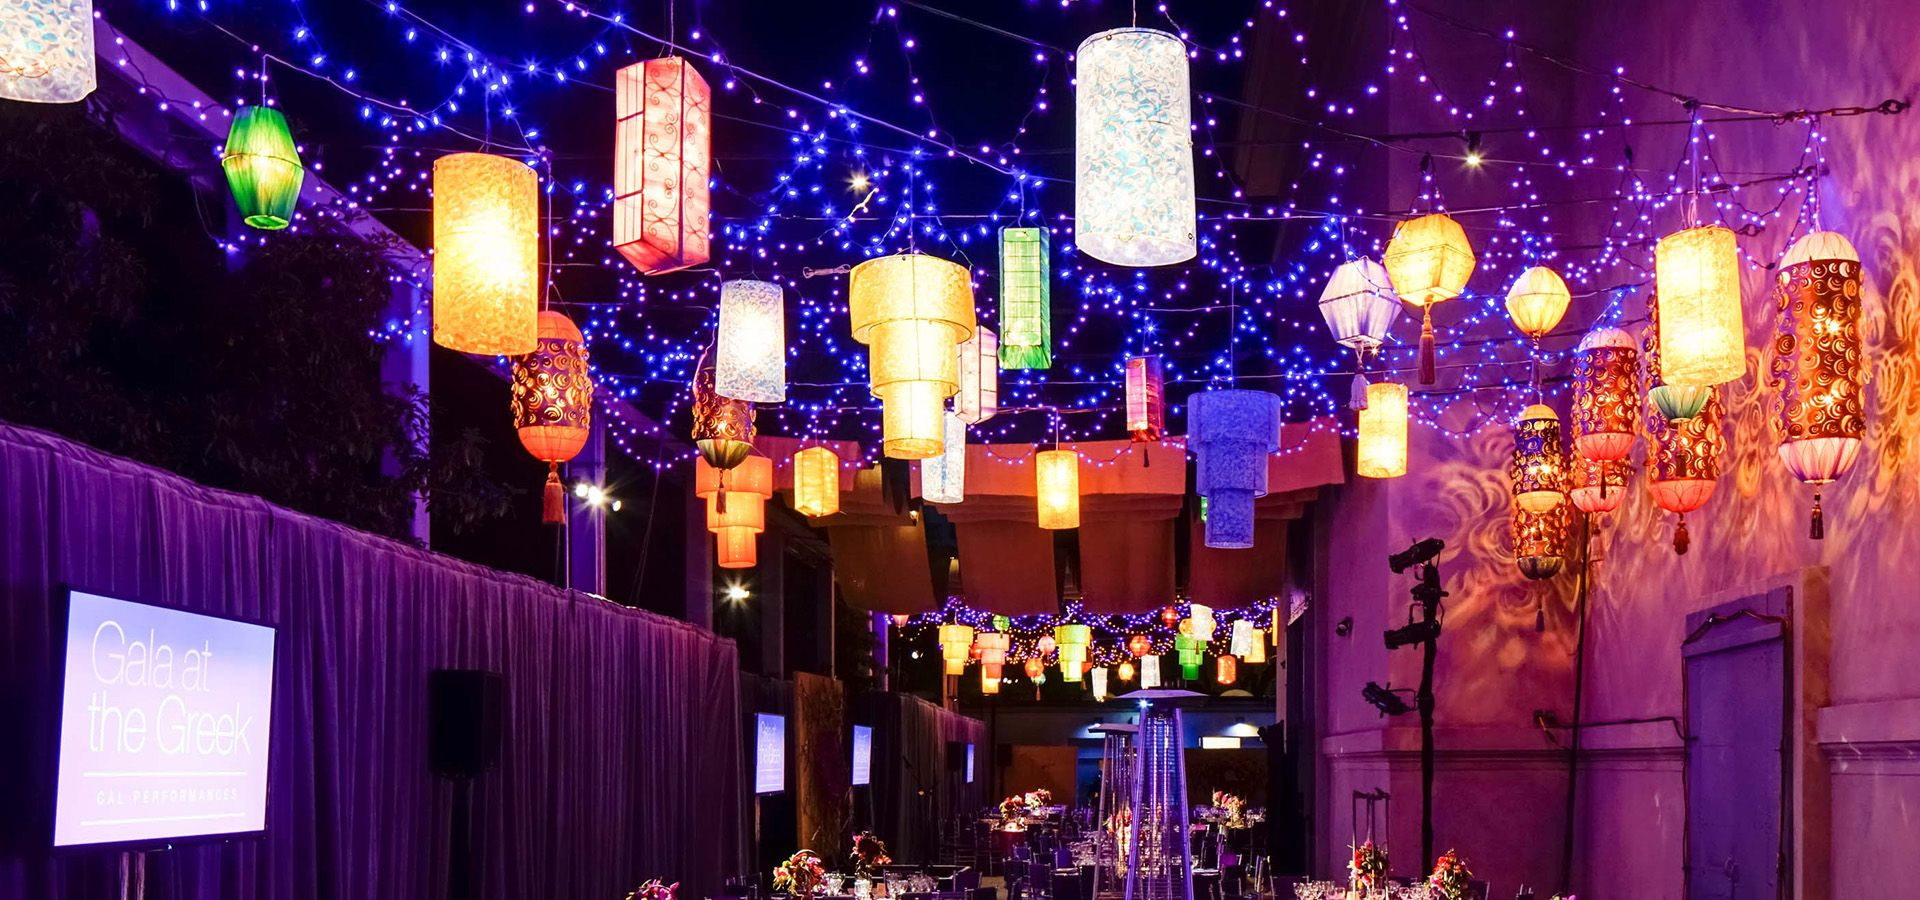 Lanterns at Gala at the Greek